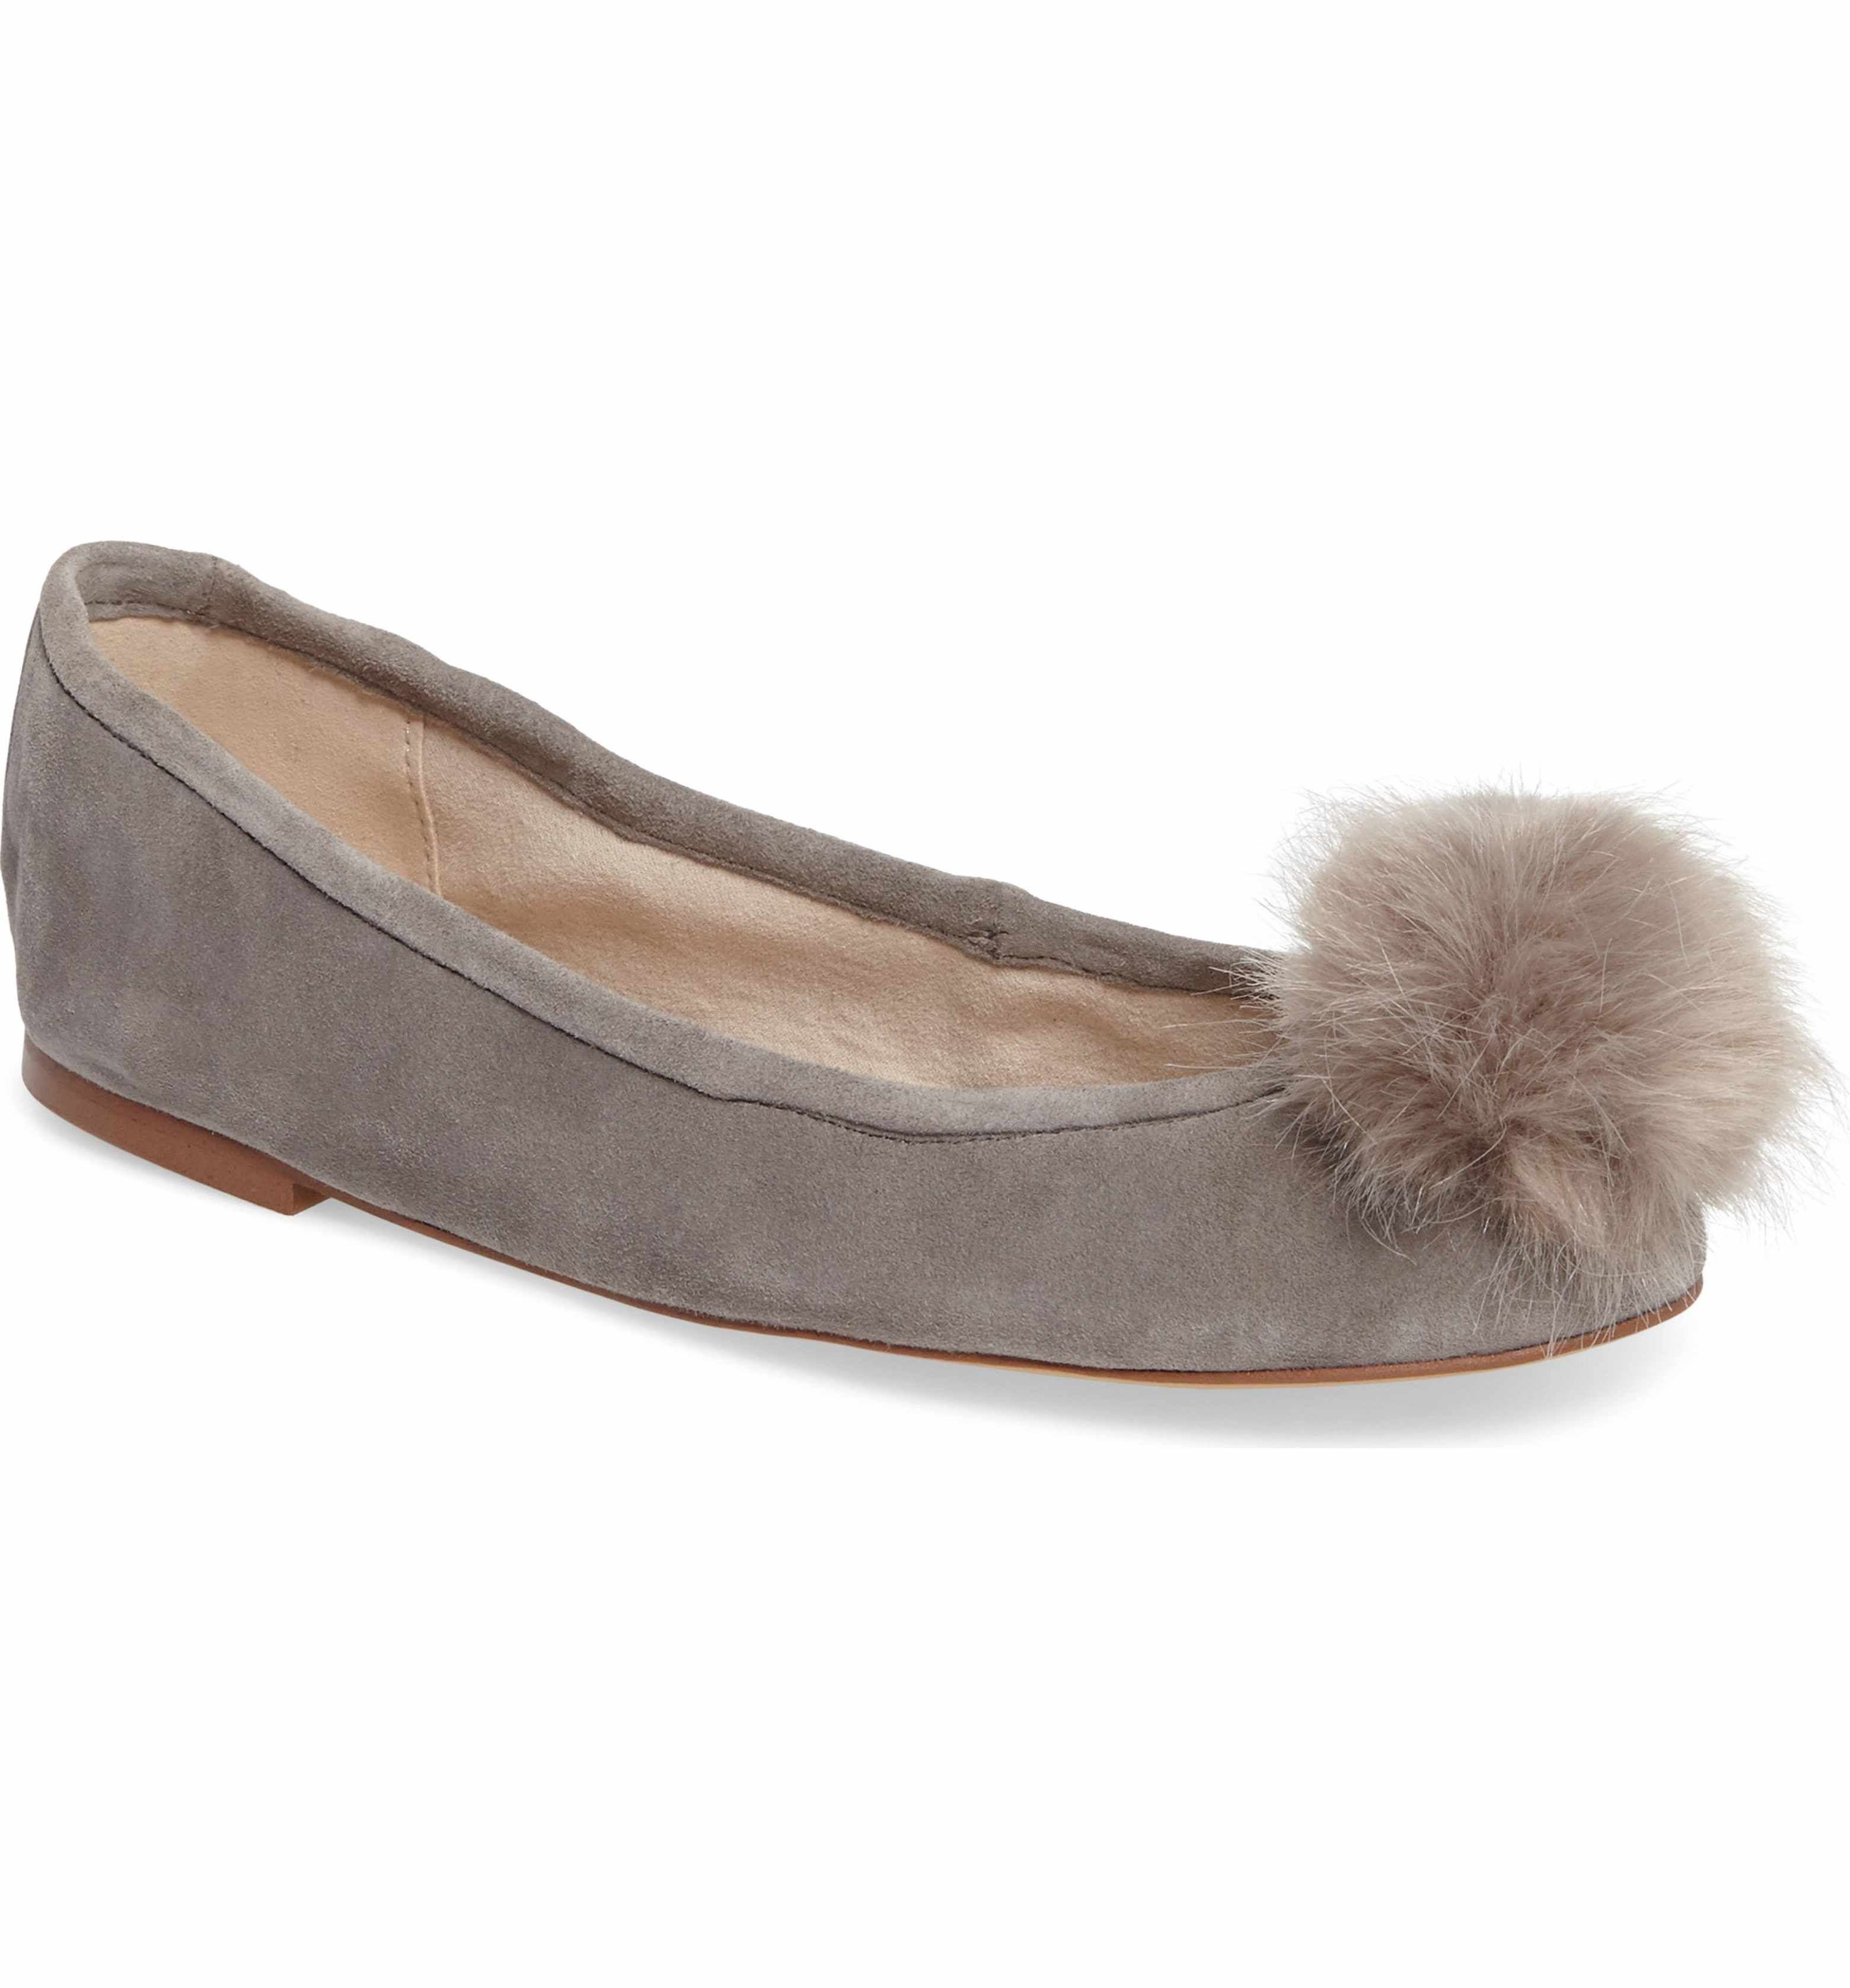 Main Image - Sam Edelman Farina Flat with Faux Fur Pompom (Women)